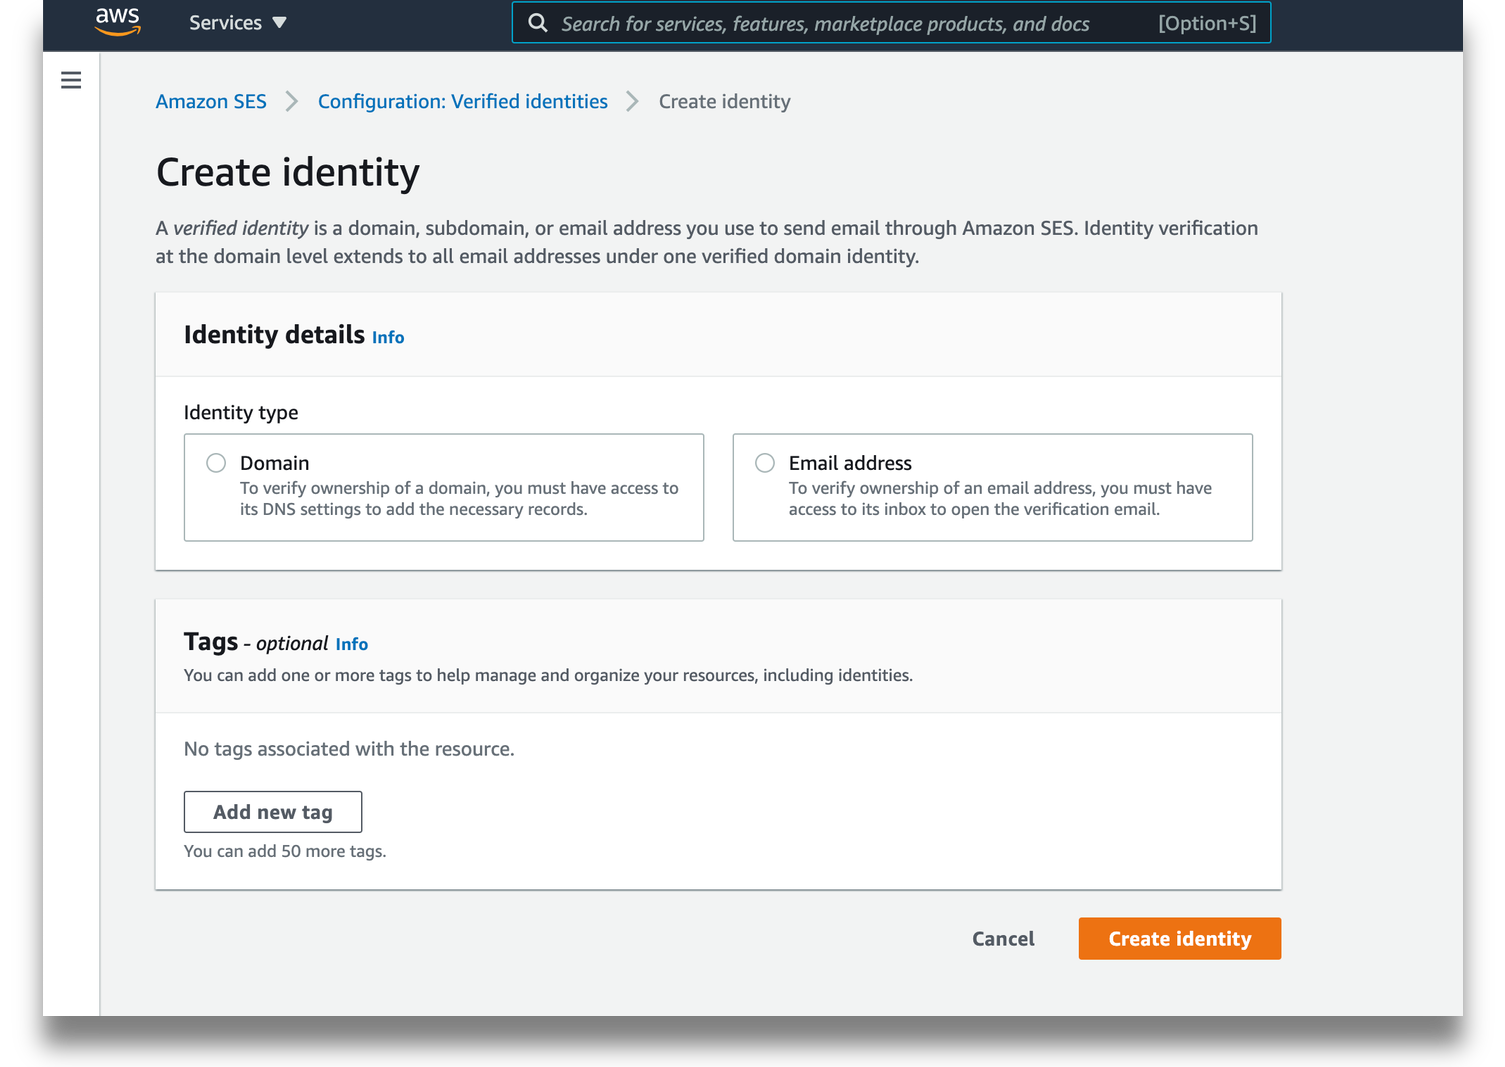 AWS SES create identify page